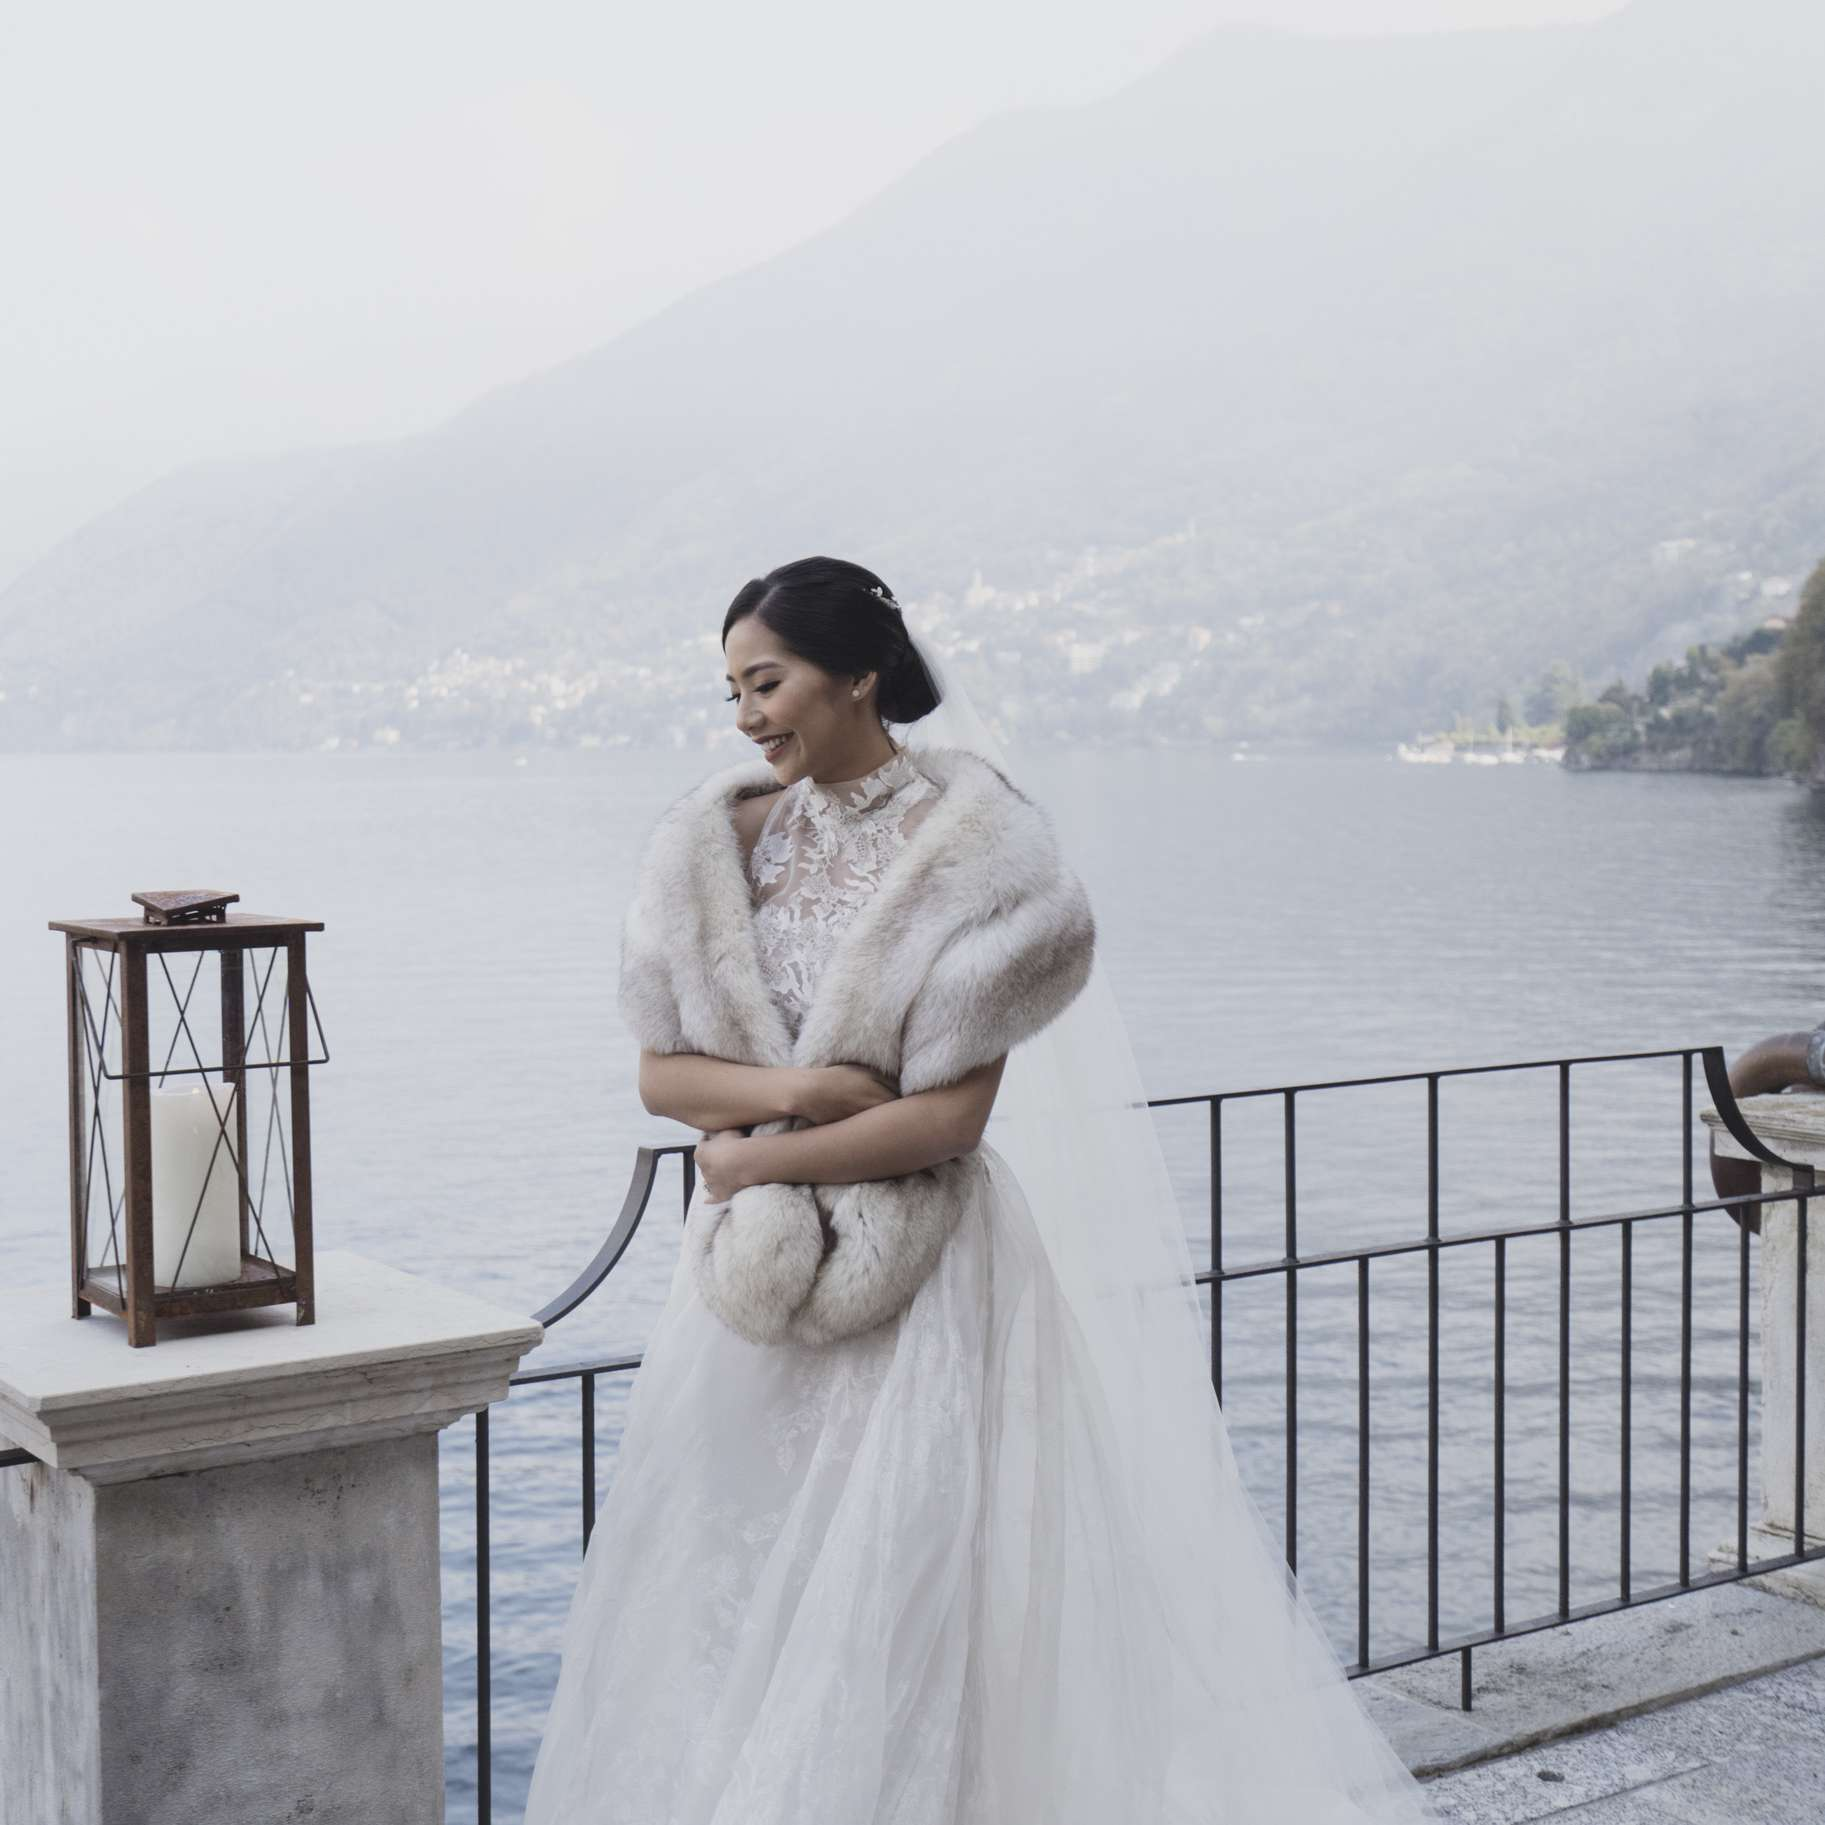 14 Brides Who Looked Truly Dreamy At Their Winter Weddings